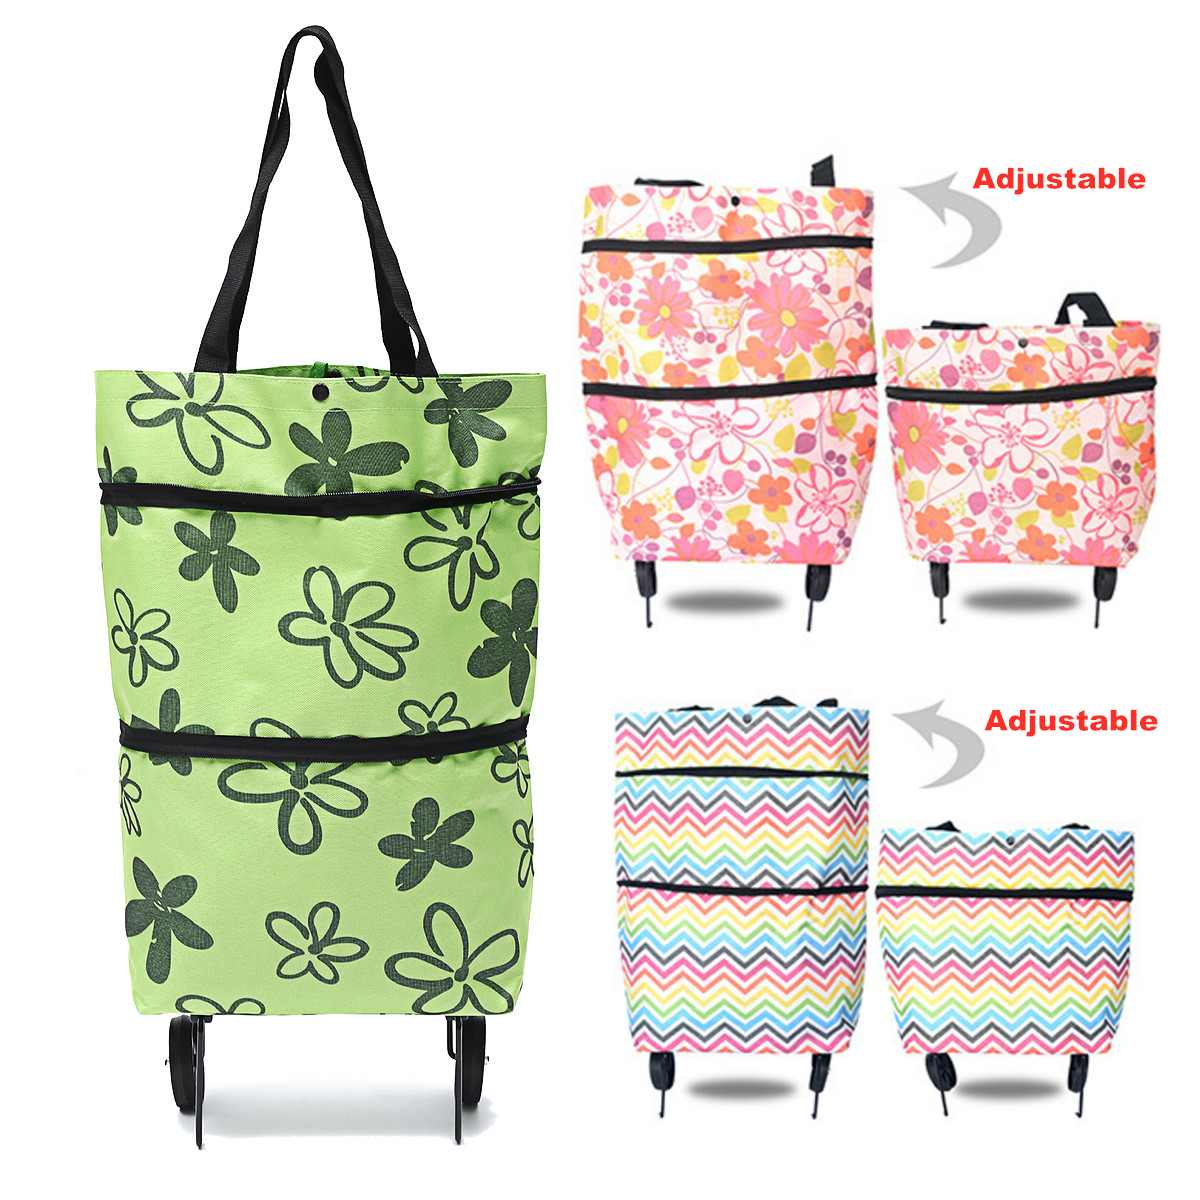 Folding Oxford Cloth Shopping Cart Laundry Grocery Trolley Dolly Handcart Market Portable Tug Pull Shopping Bag With 2 Wheels